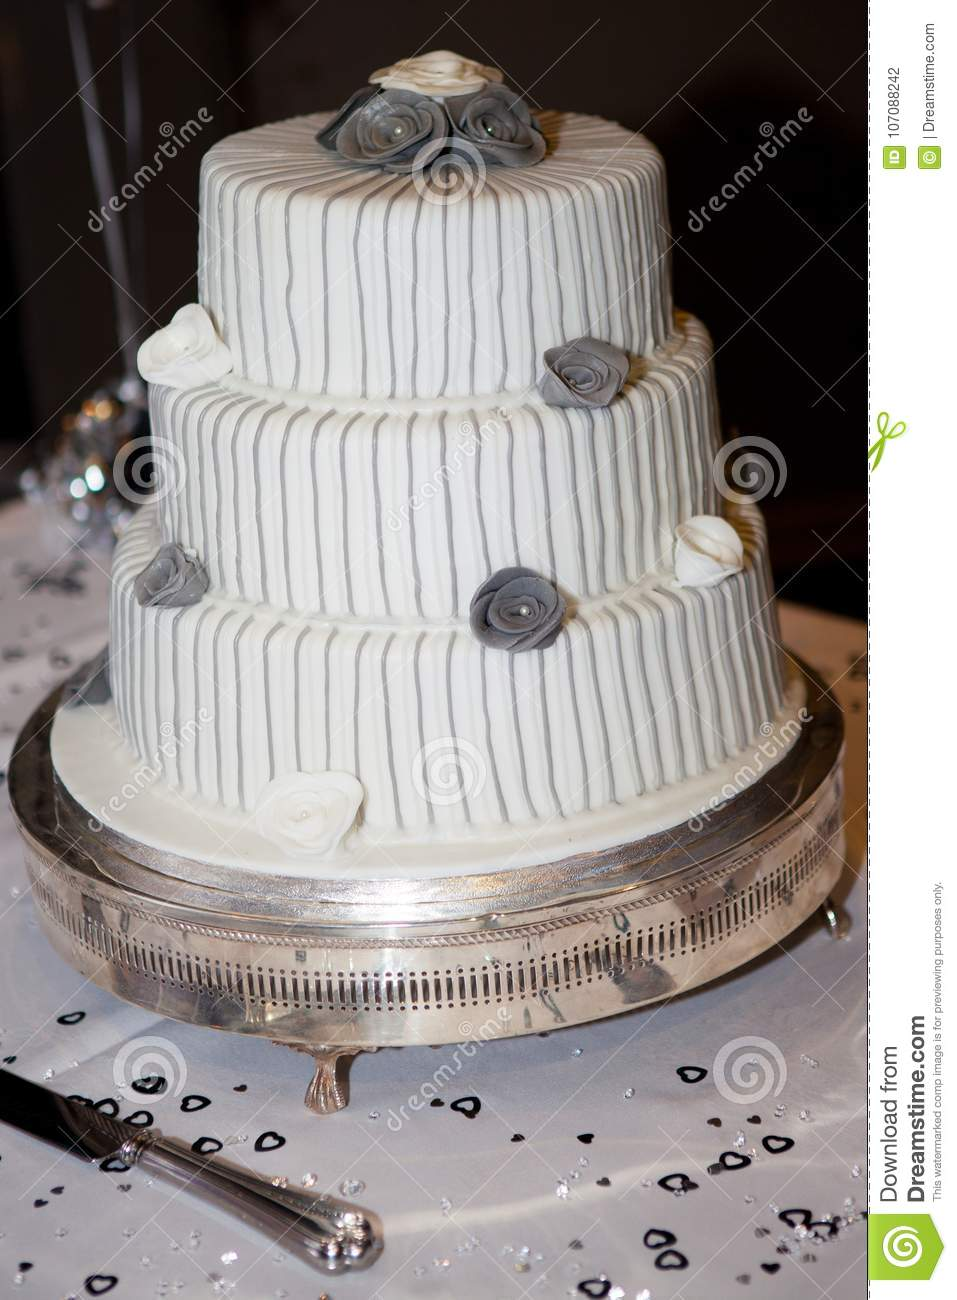 A Wedding Cake With Grey And White Flowers Decorating The Top Stock